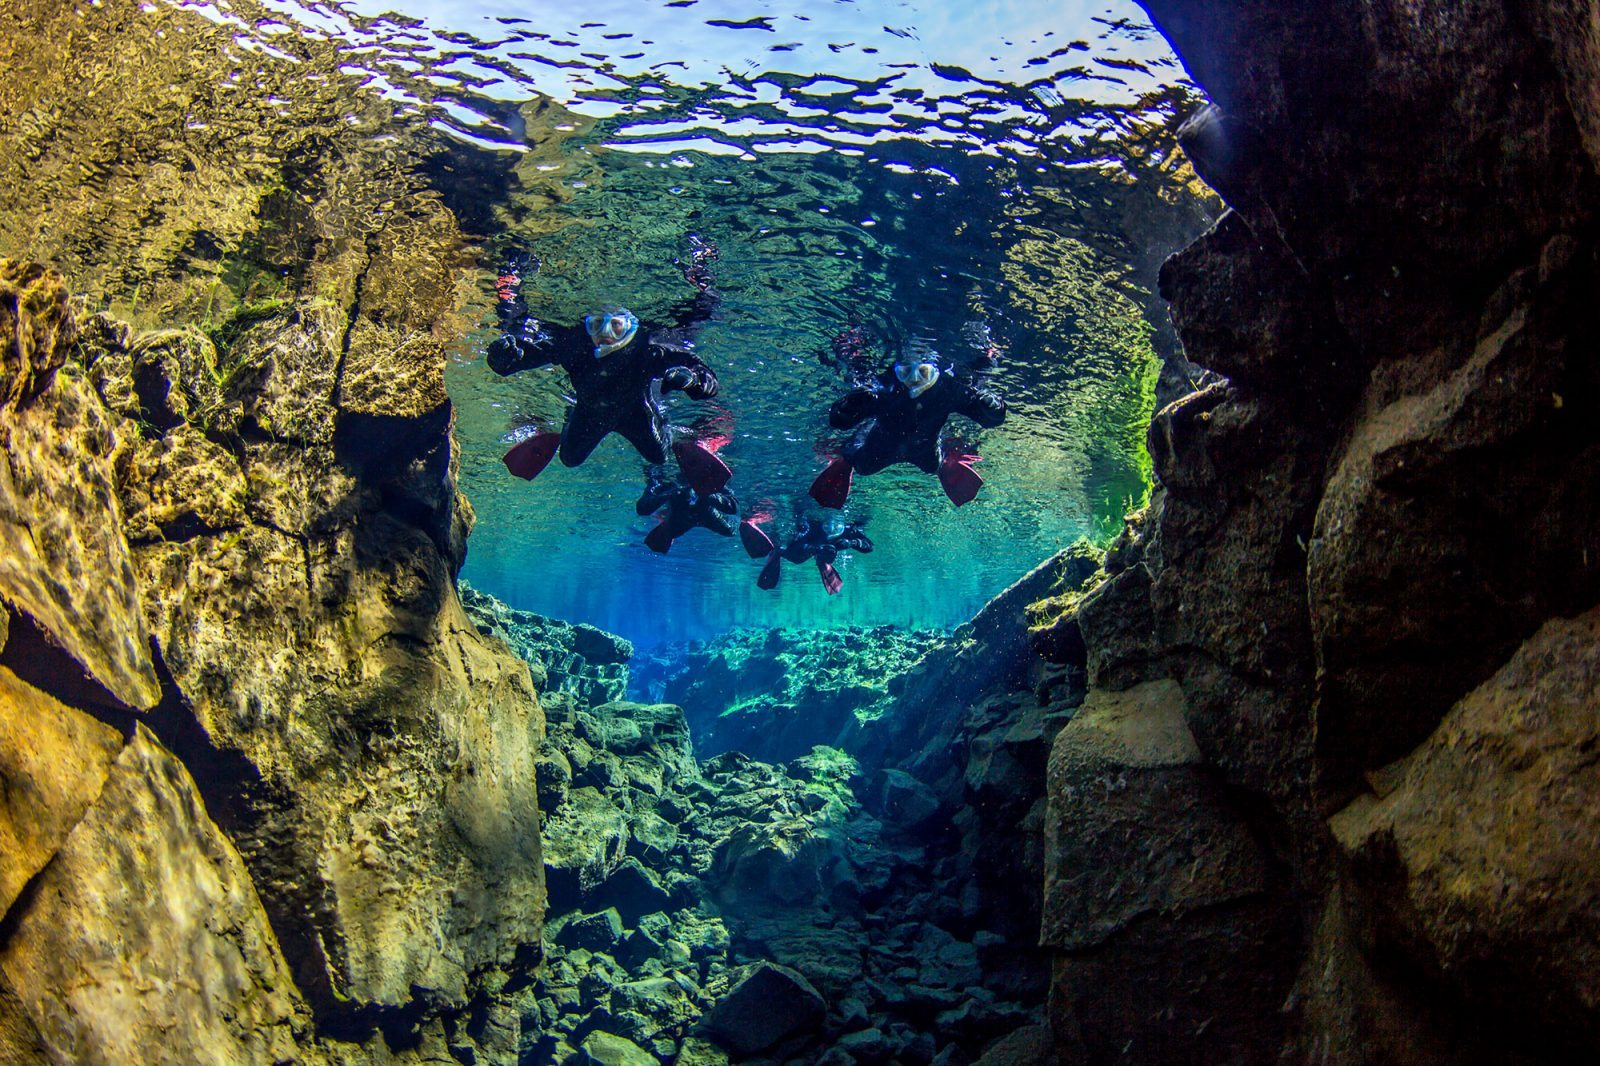 snorkelers in Silfra Iceland, snorkeling tour in Iceland, snorkelling in Silfra, snorkel Silfra